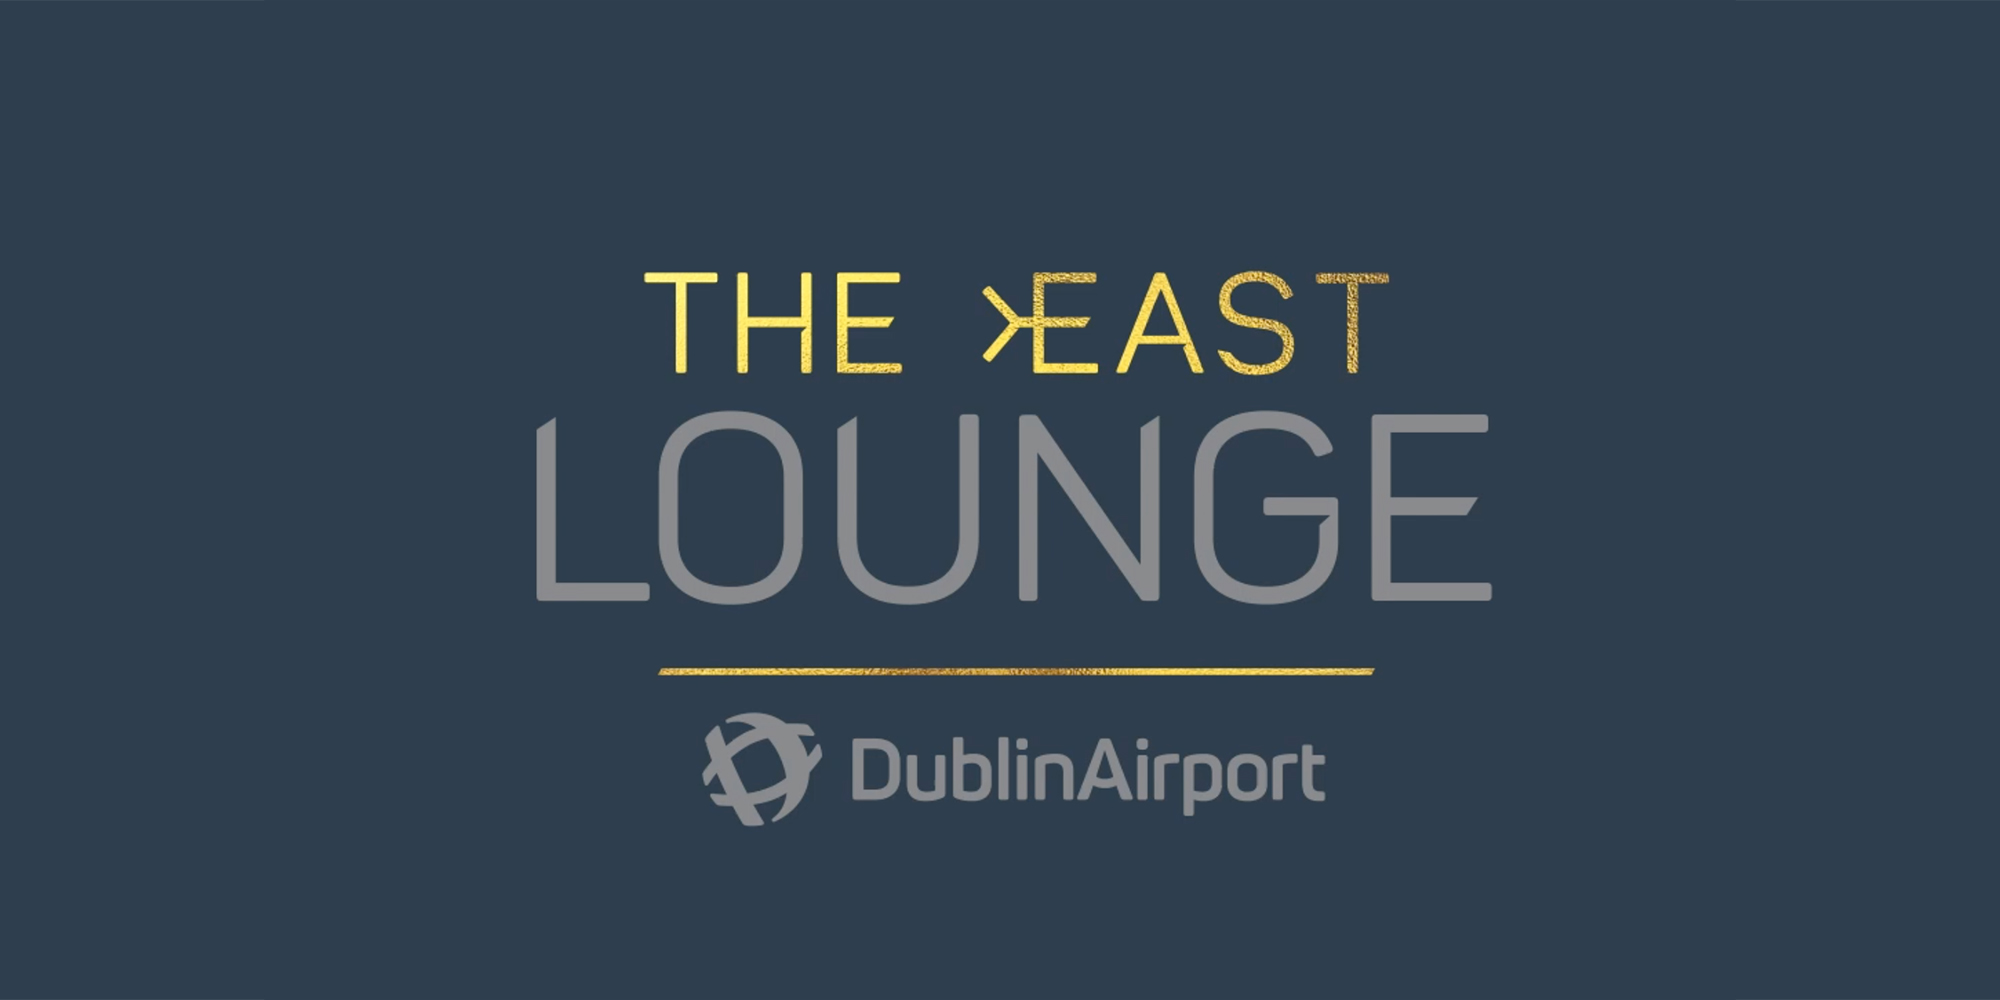 Cover image: The East Lounge